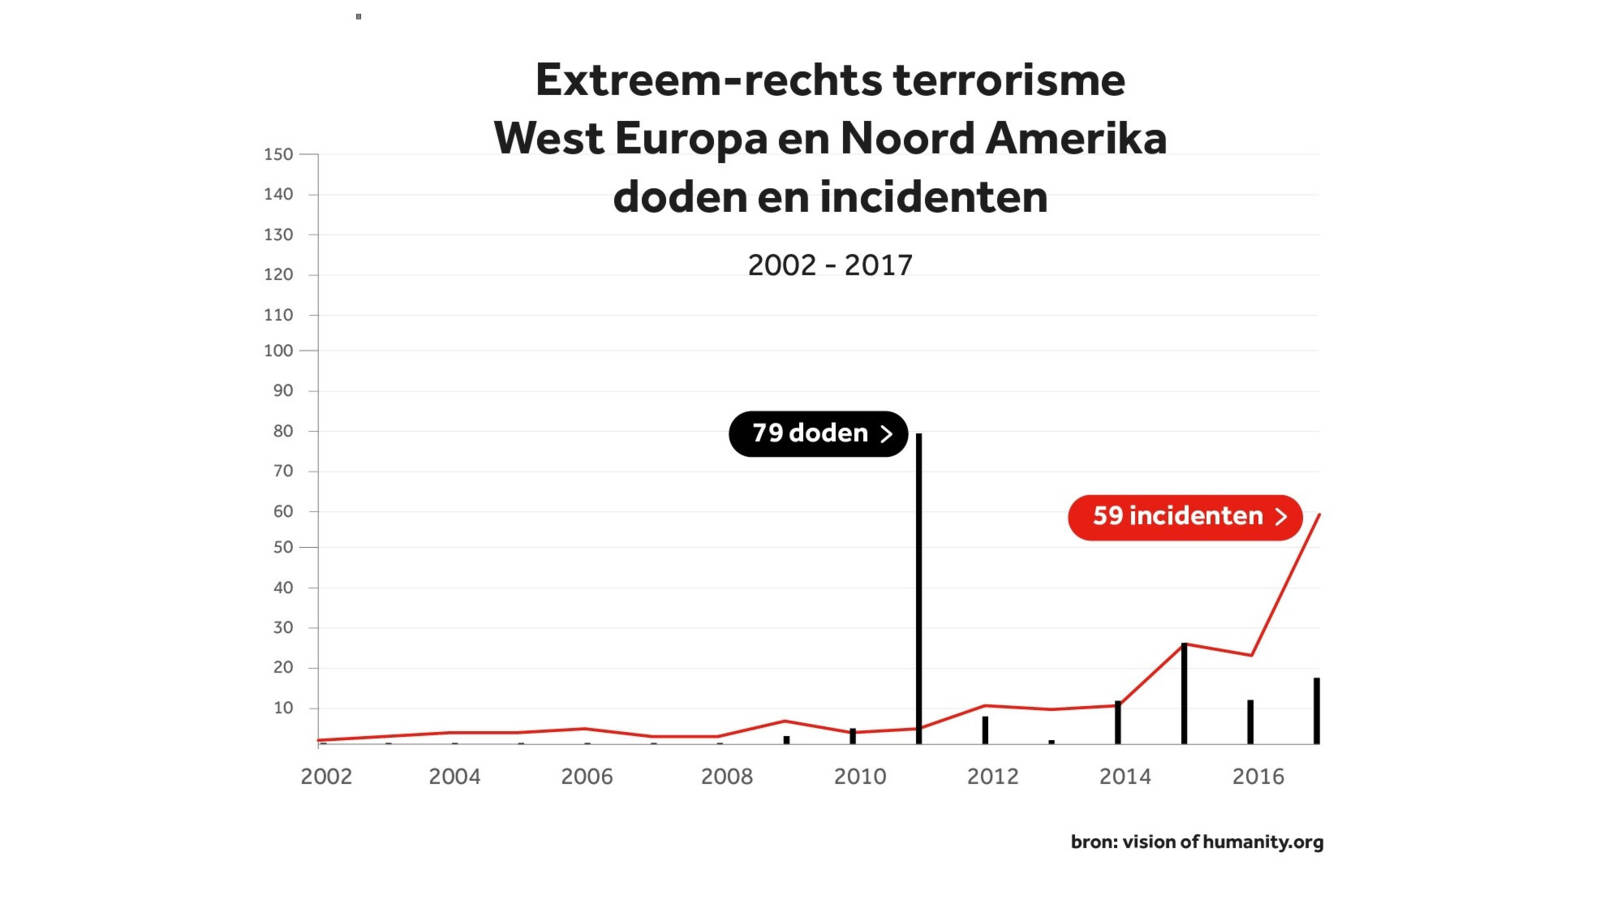 Extreme right terrorism, Western Europe and North America, 2002-2017